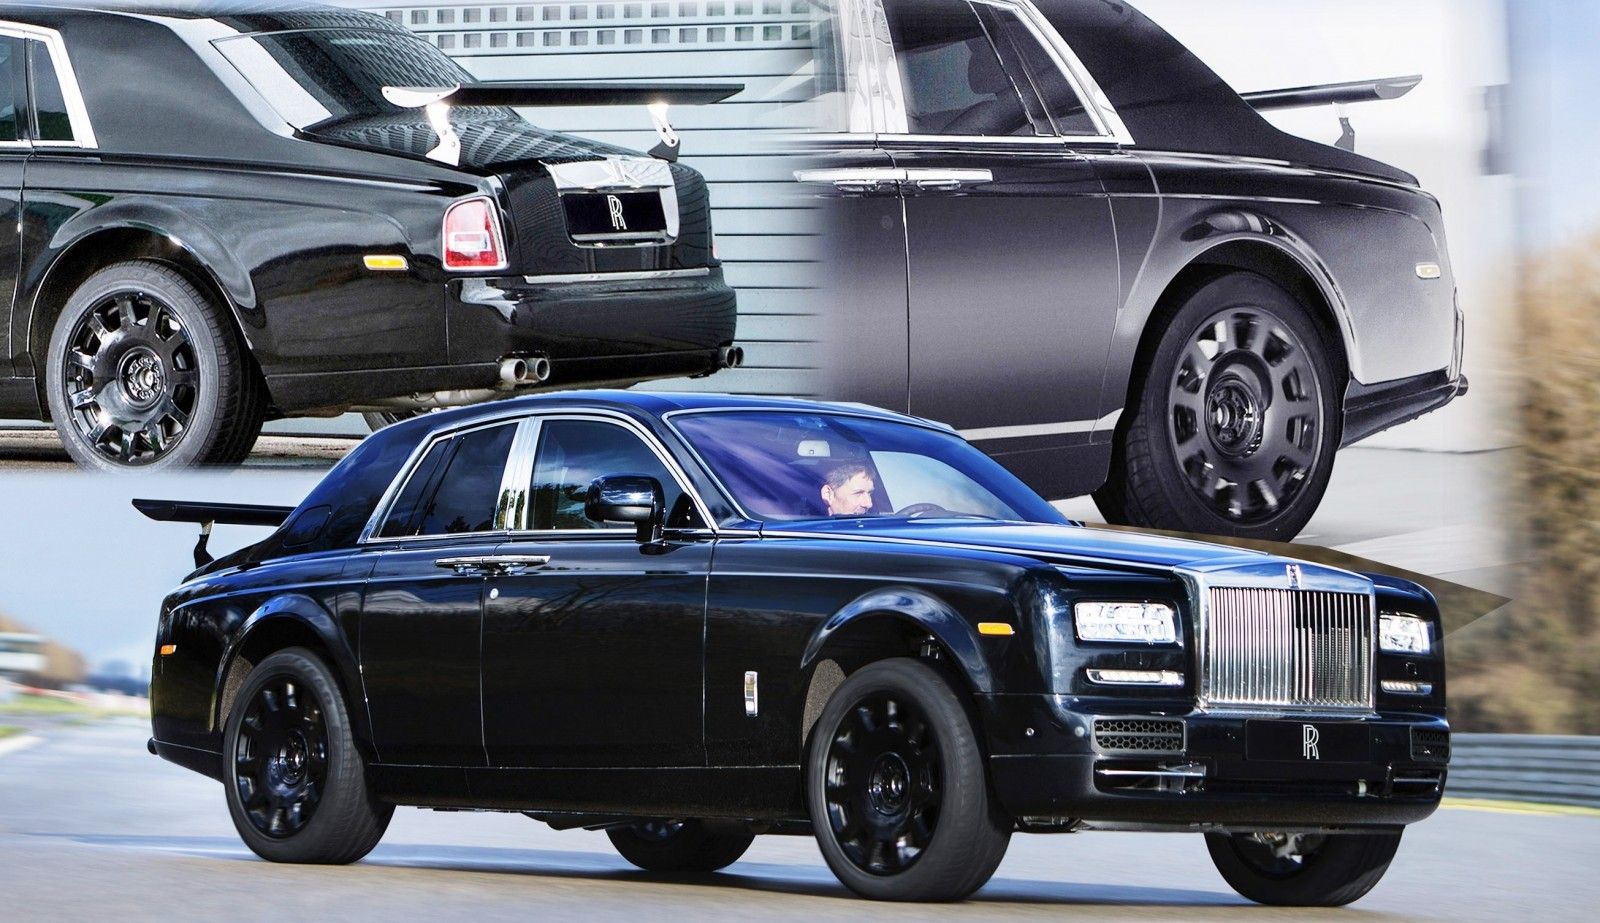 2017 rolls royce suv project callinan test mules 4. Black Bedroom Furniture Sets. Home Design Ideas